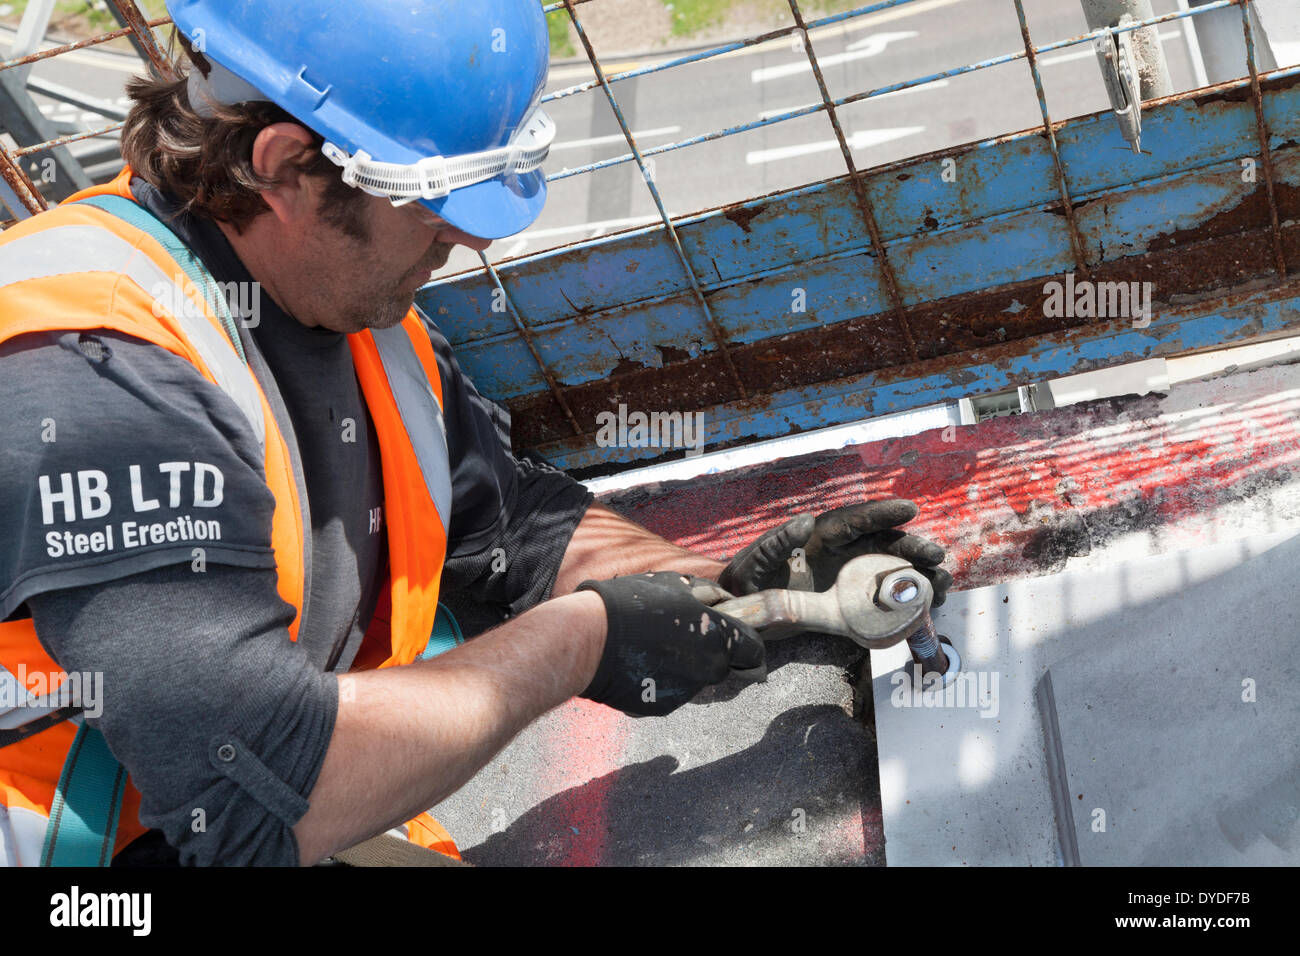 Steel rigger tightening nut on steelwork on a construction site. - Stock Image